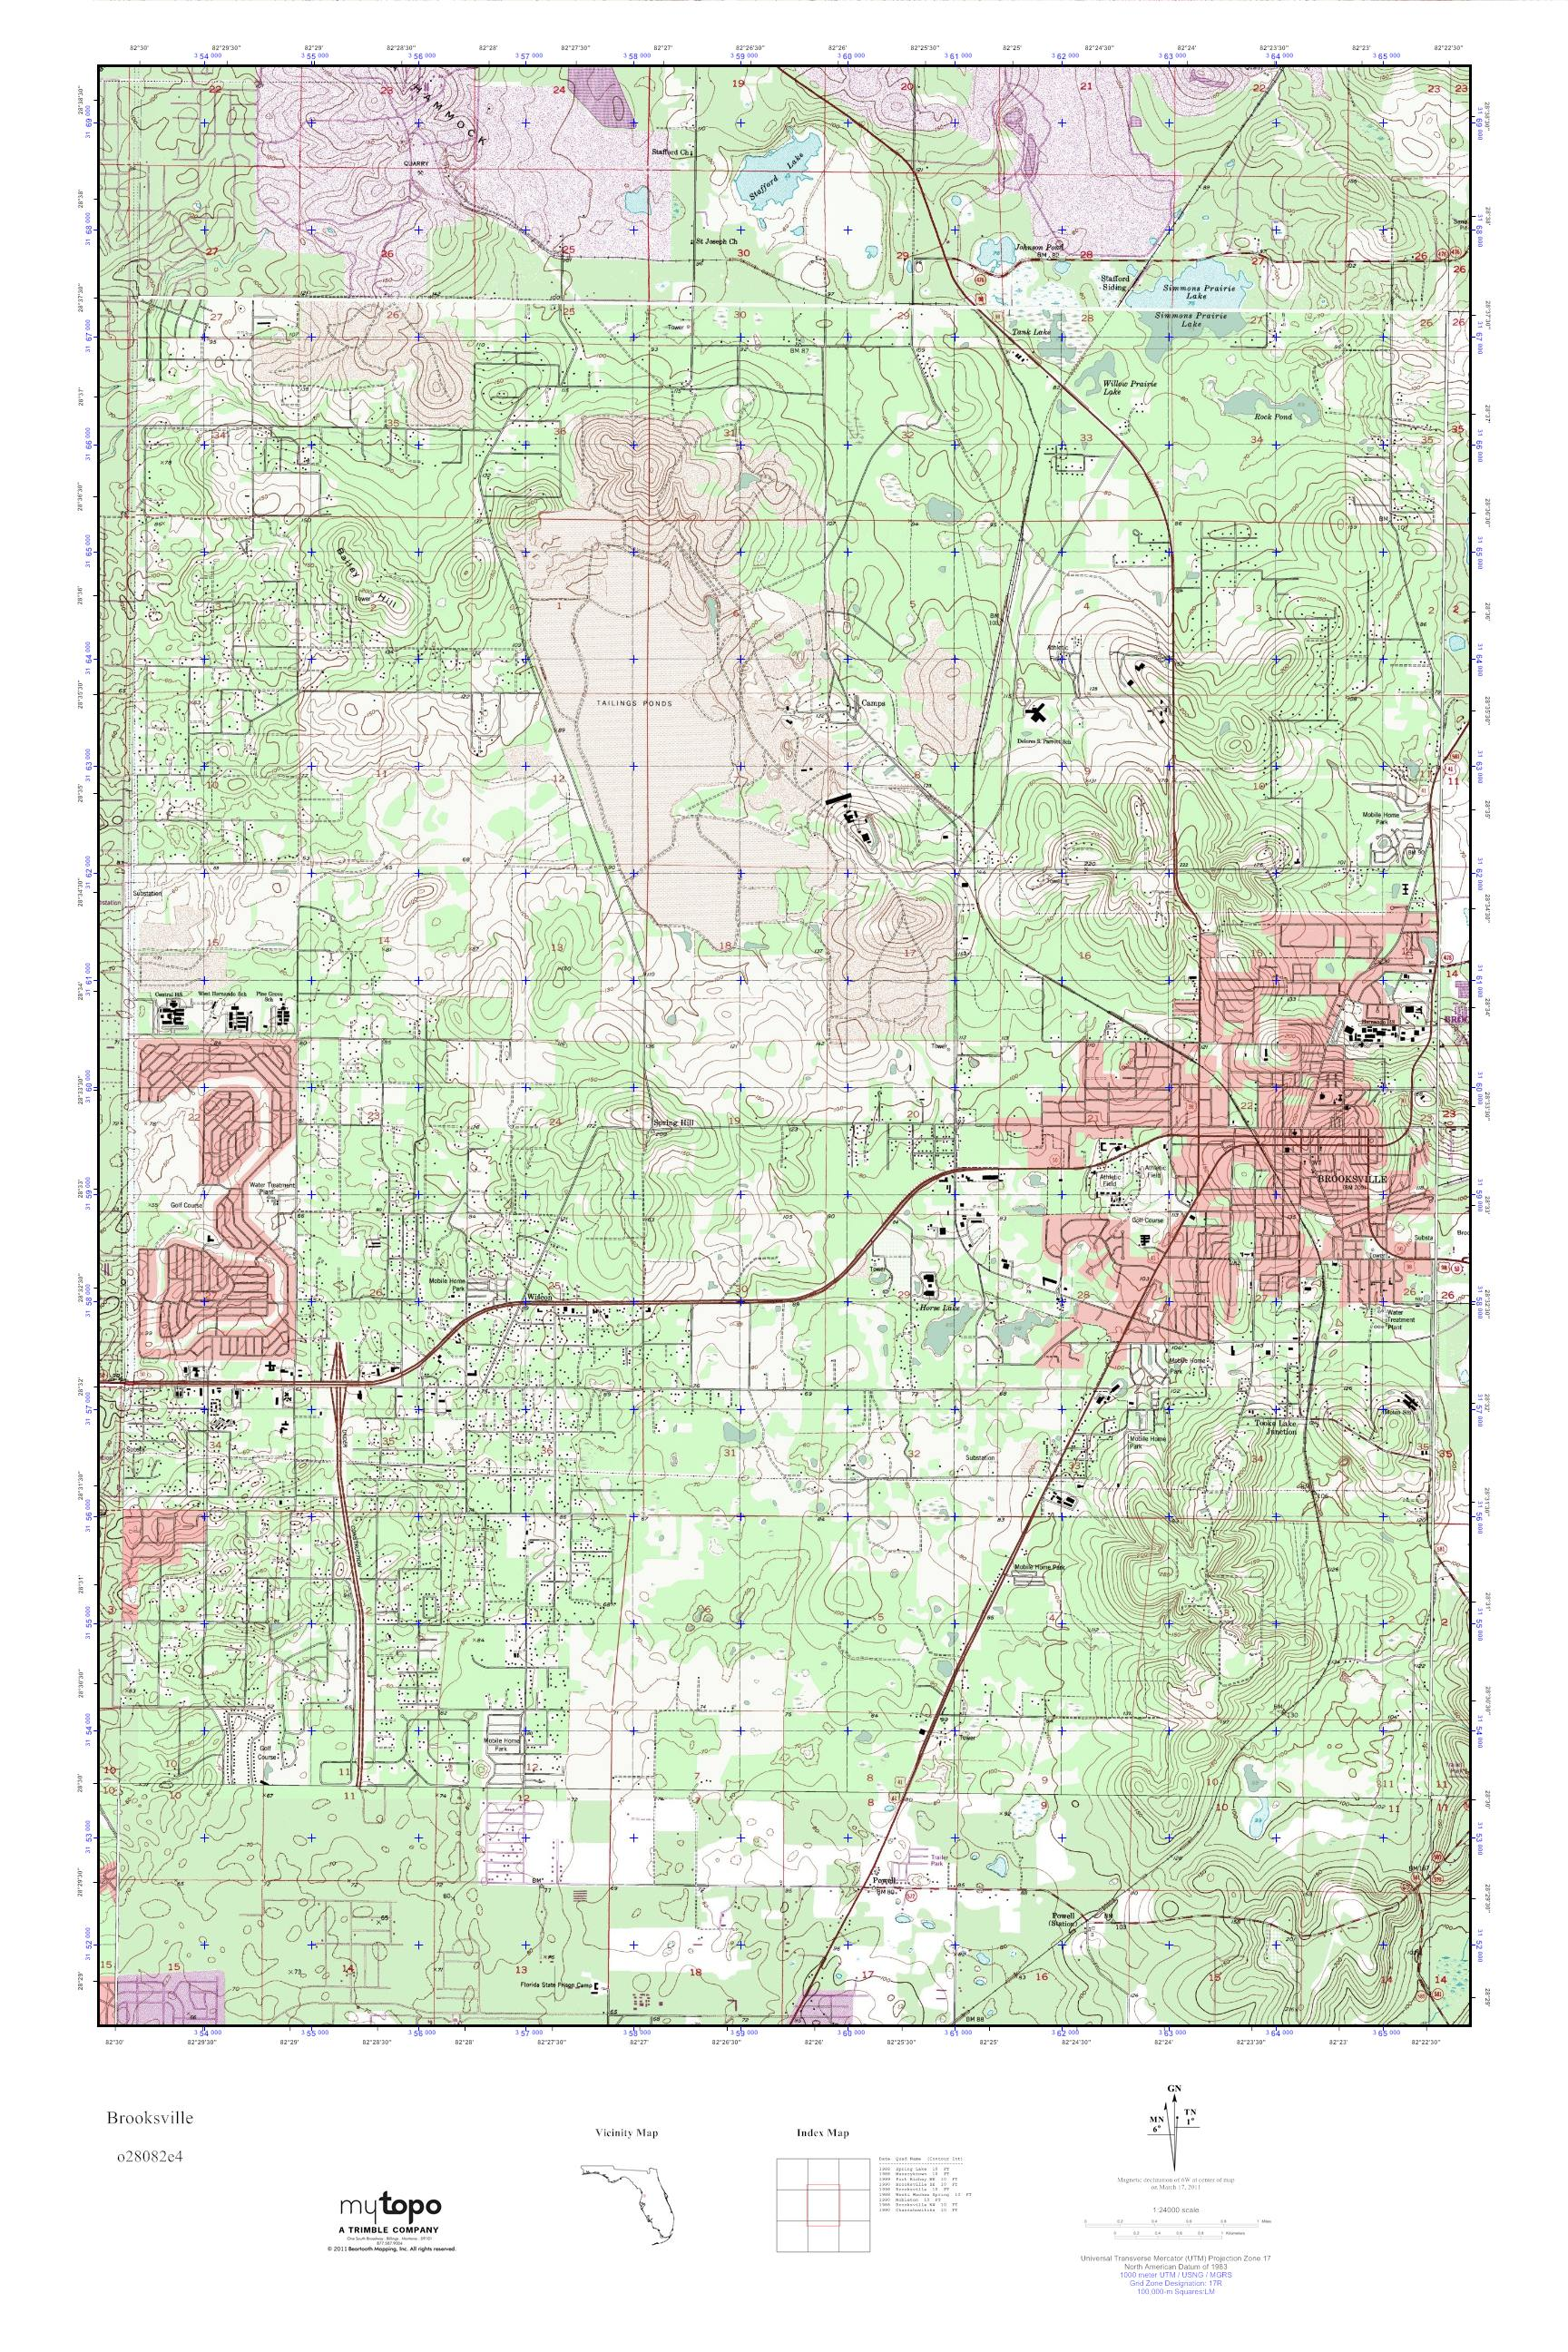 Brooksville Florida Map.Mytopo Brooksville Florida Usgs Quad Topo Map